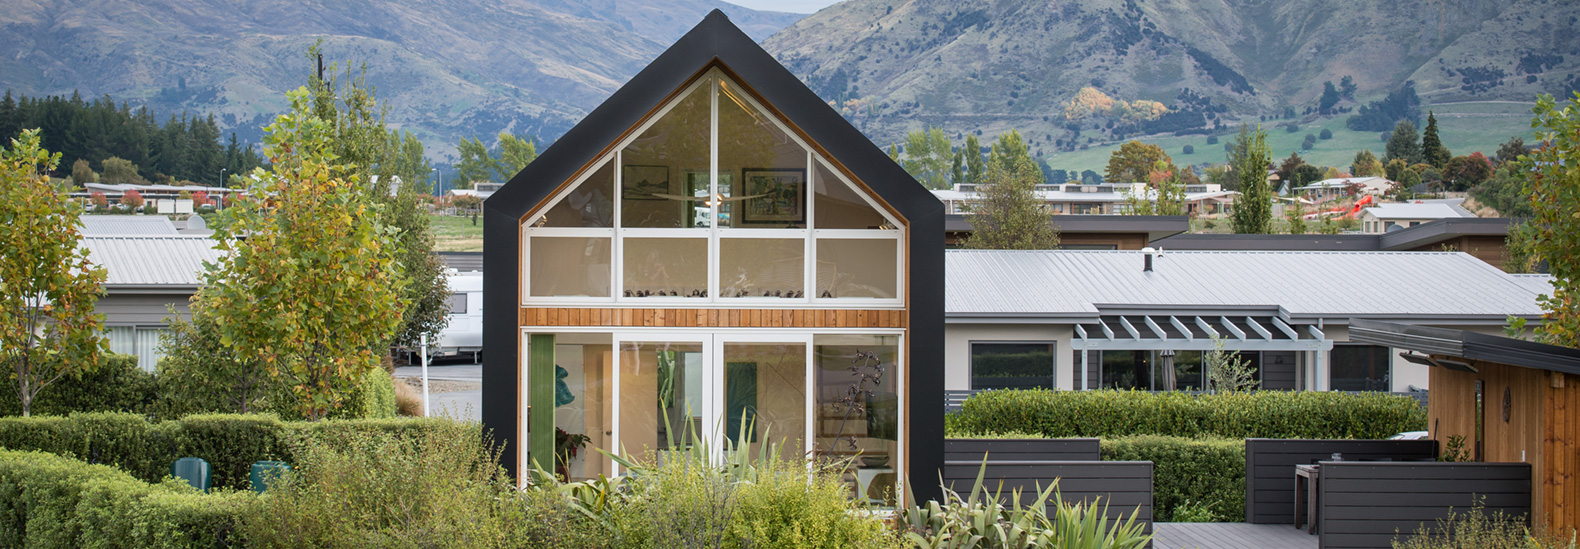 Award-winning passive tiny house is insulated to combat New Zealand's weather